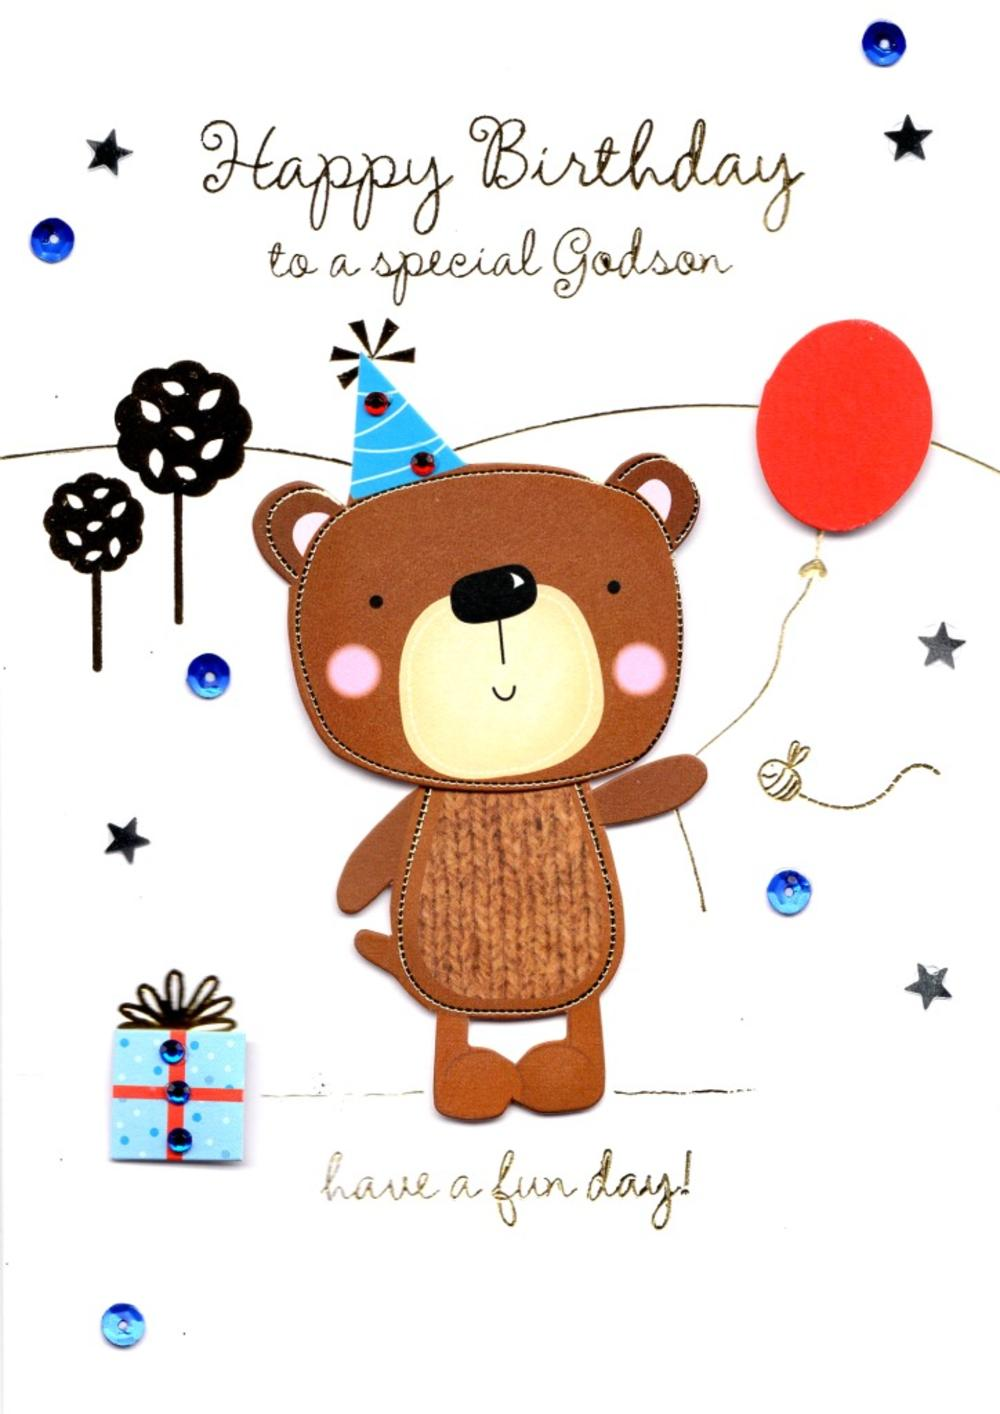 Special Godson Handmade Birthday Greeting Card Cards